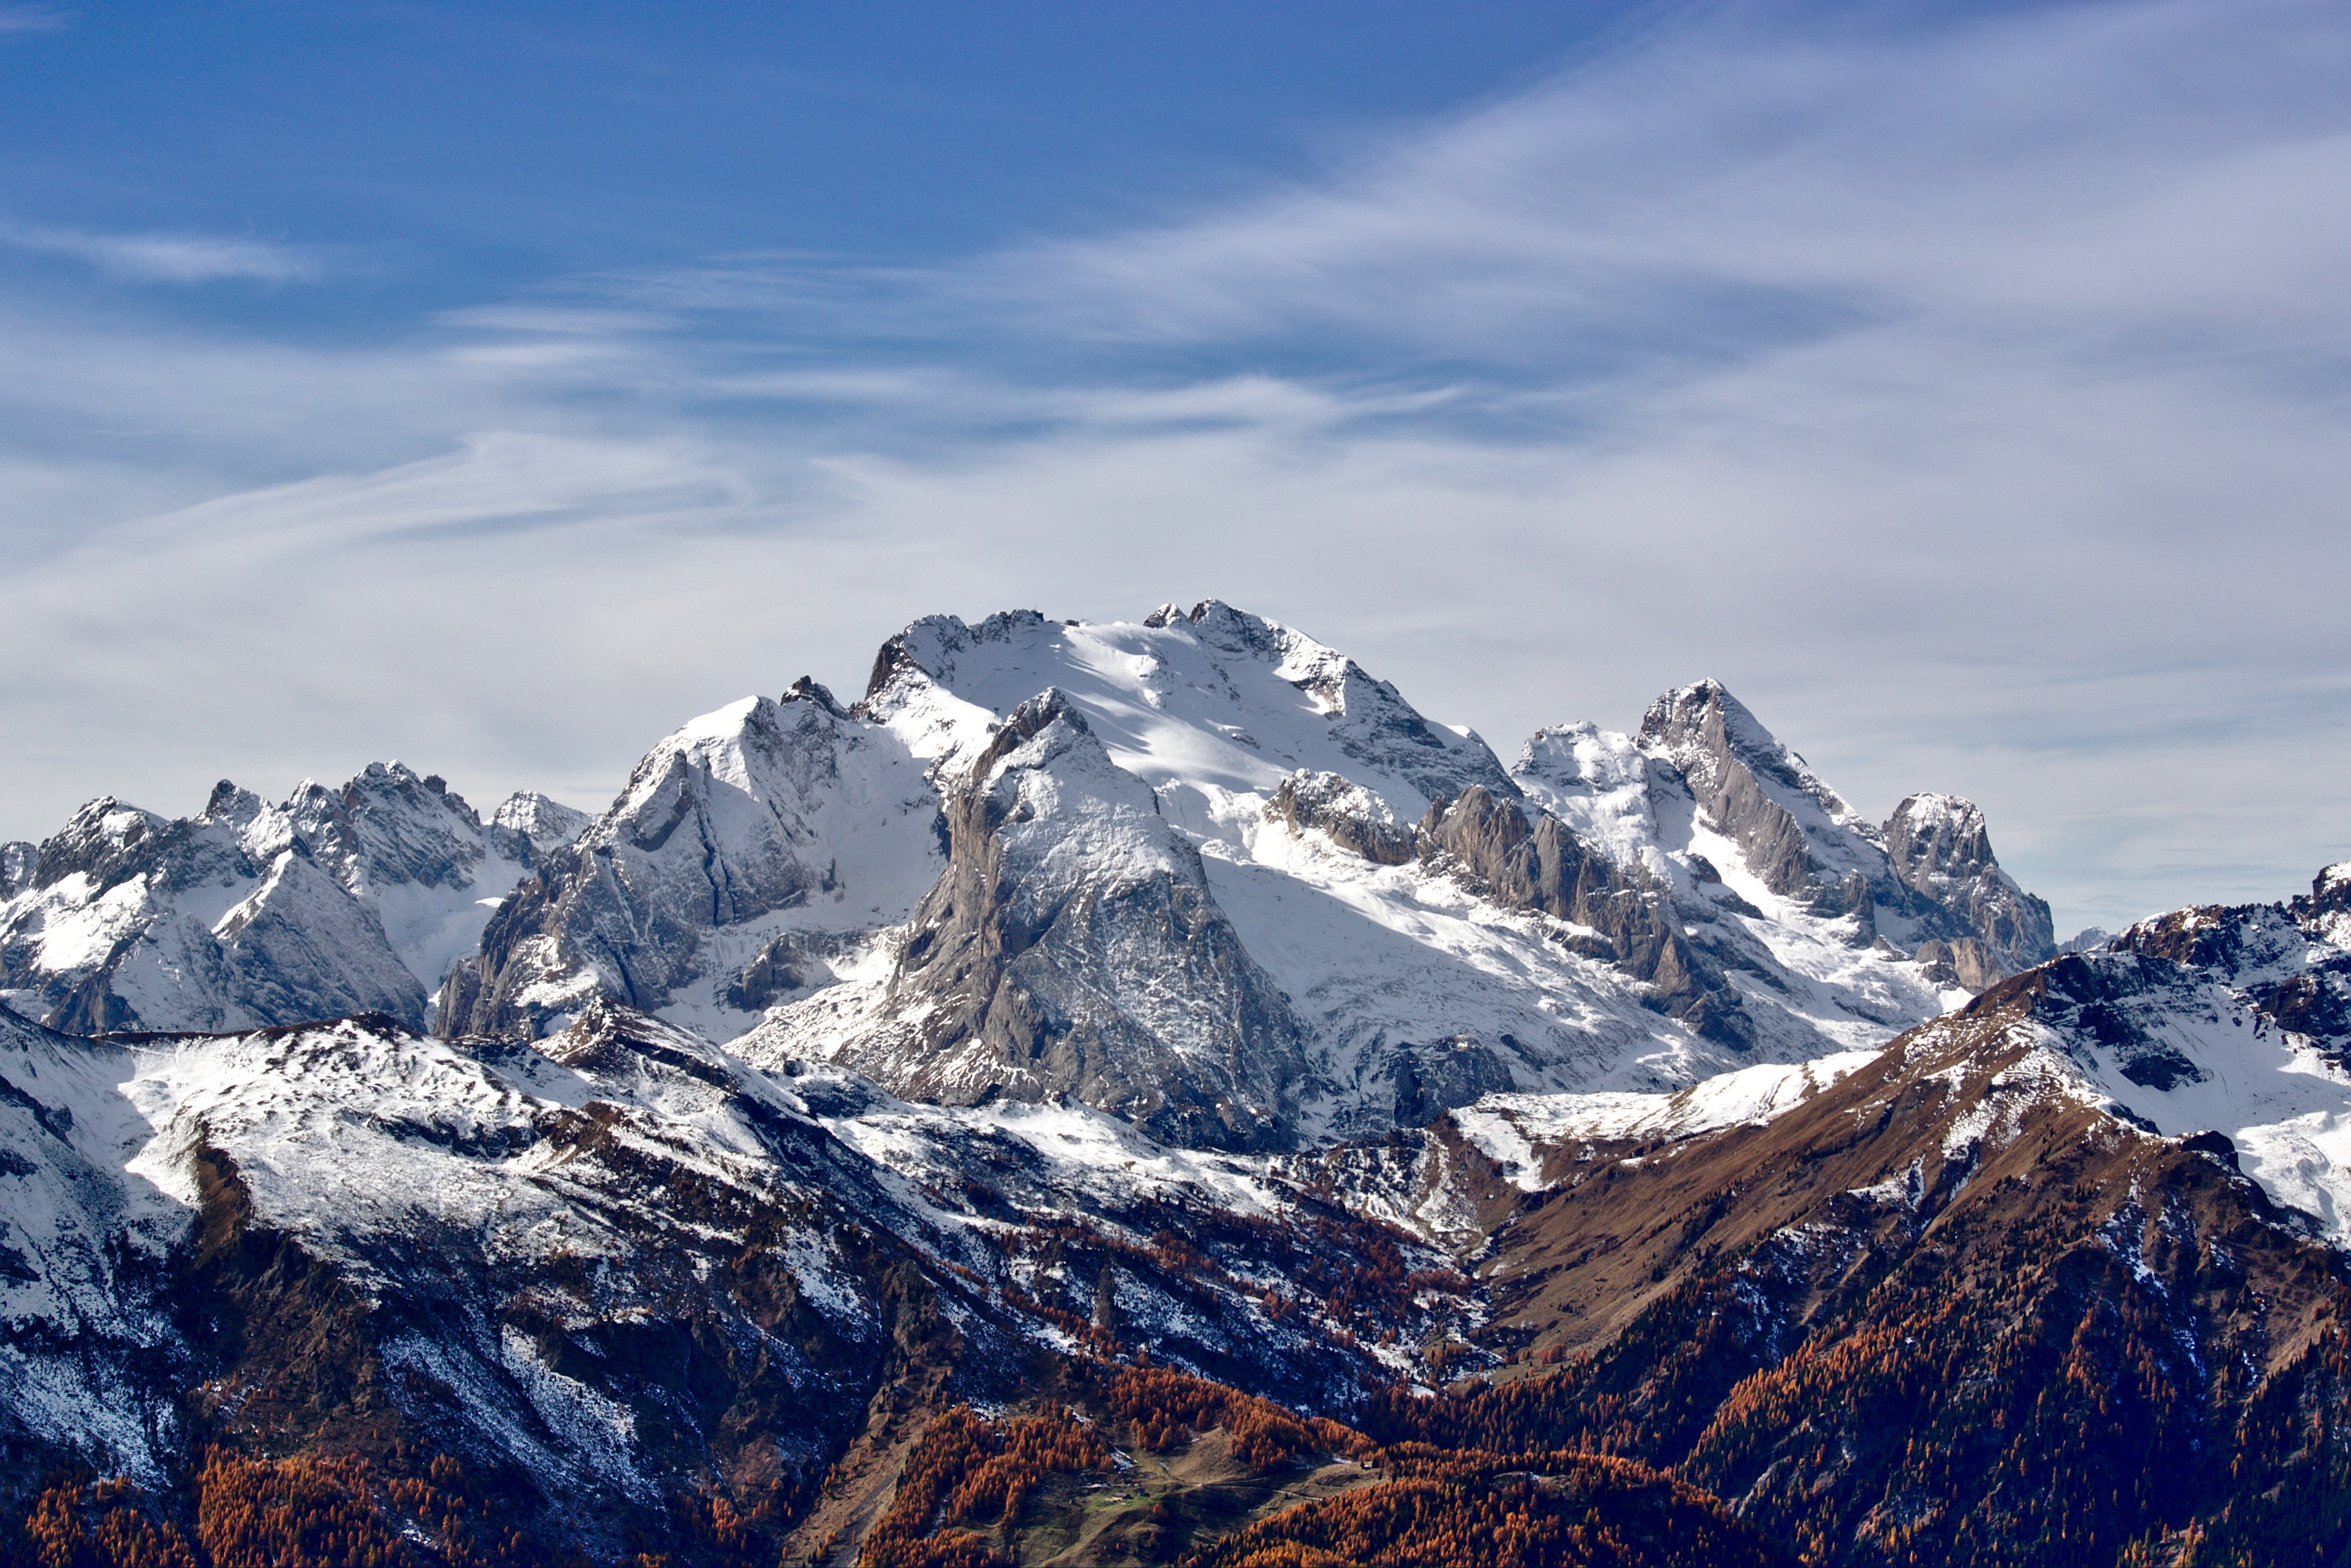 High Mountains of the Alps image - Free stock photo - Public Domain ...